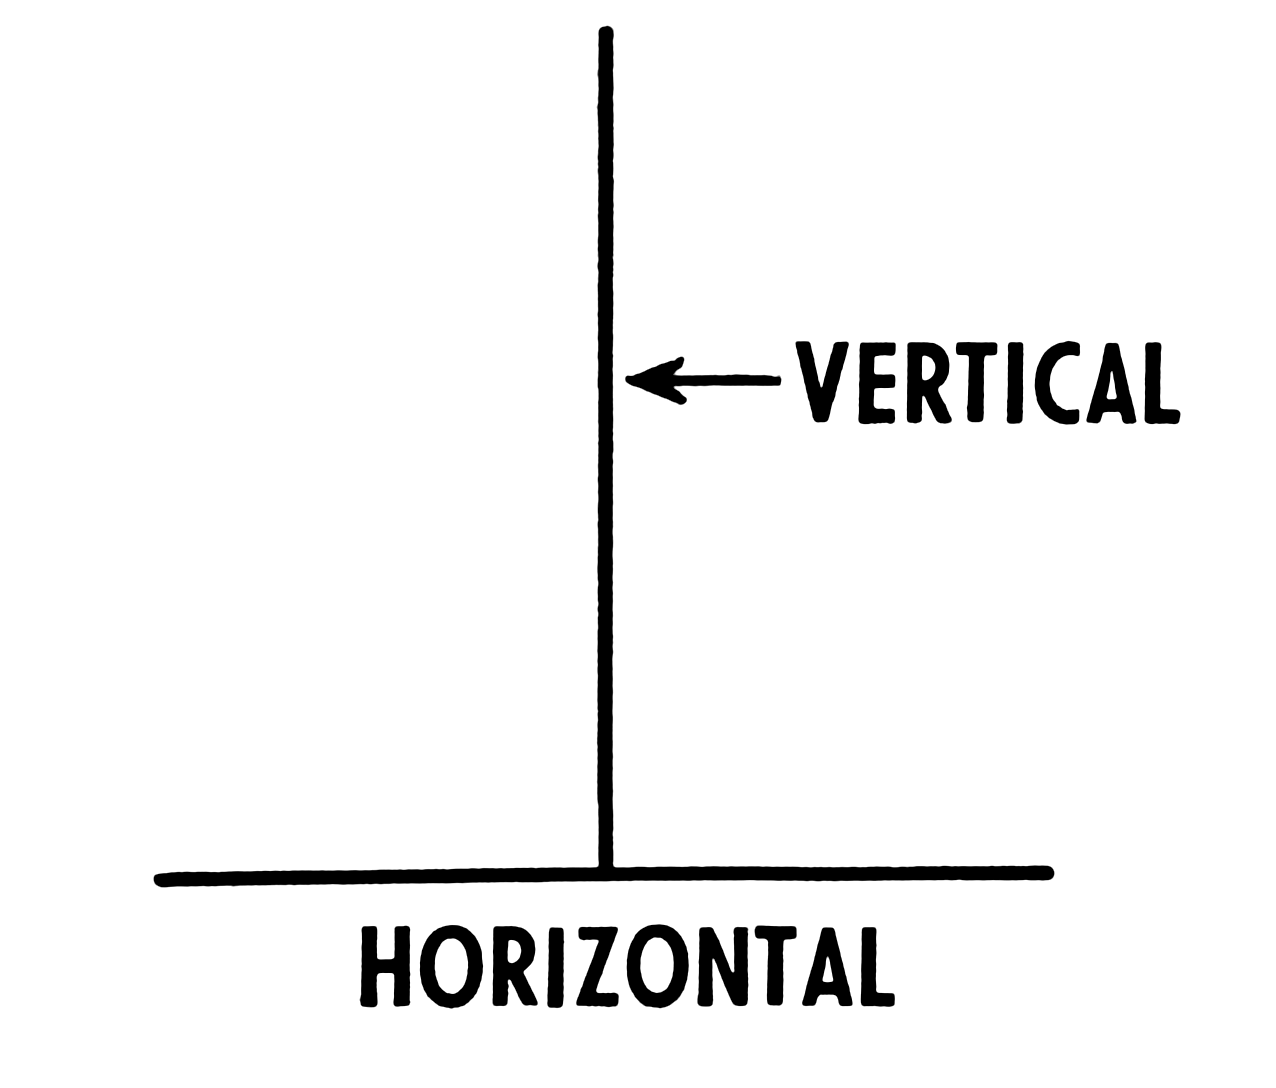 File:Horizontal (PSF).png - Wikimedia Commons